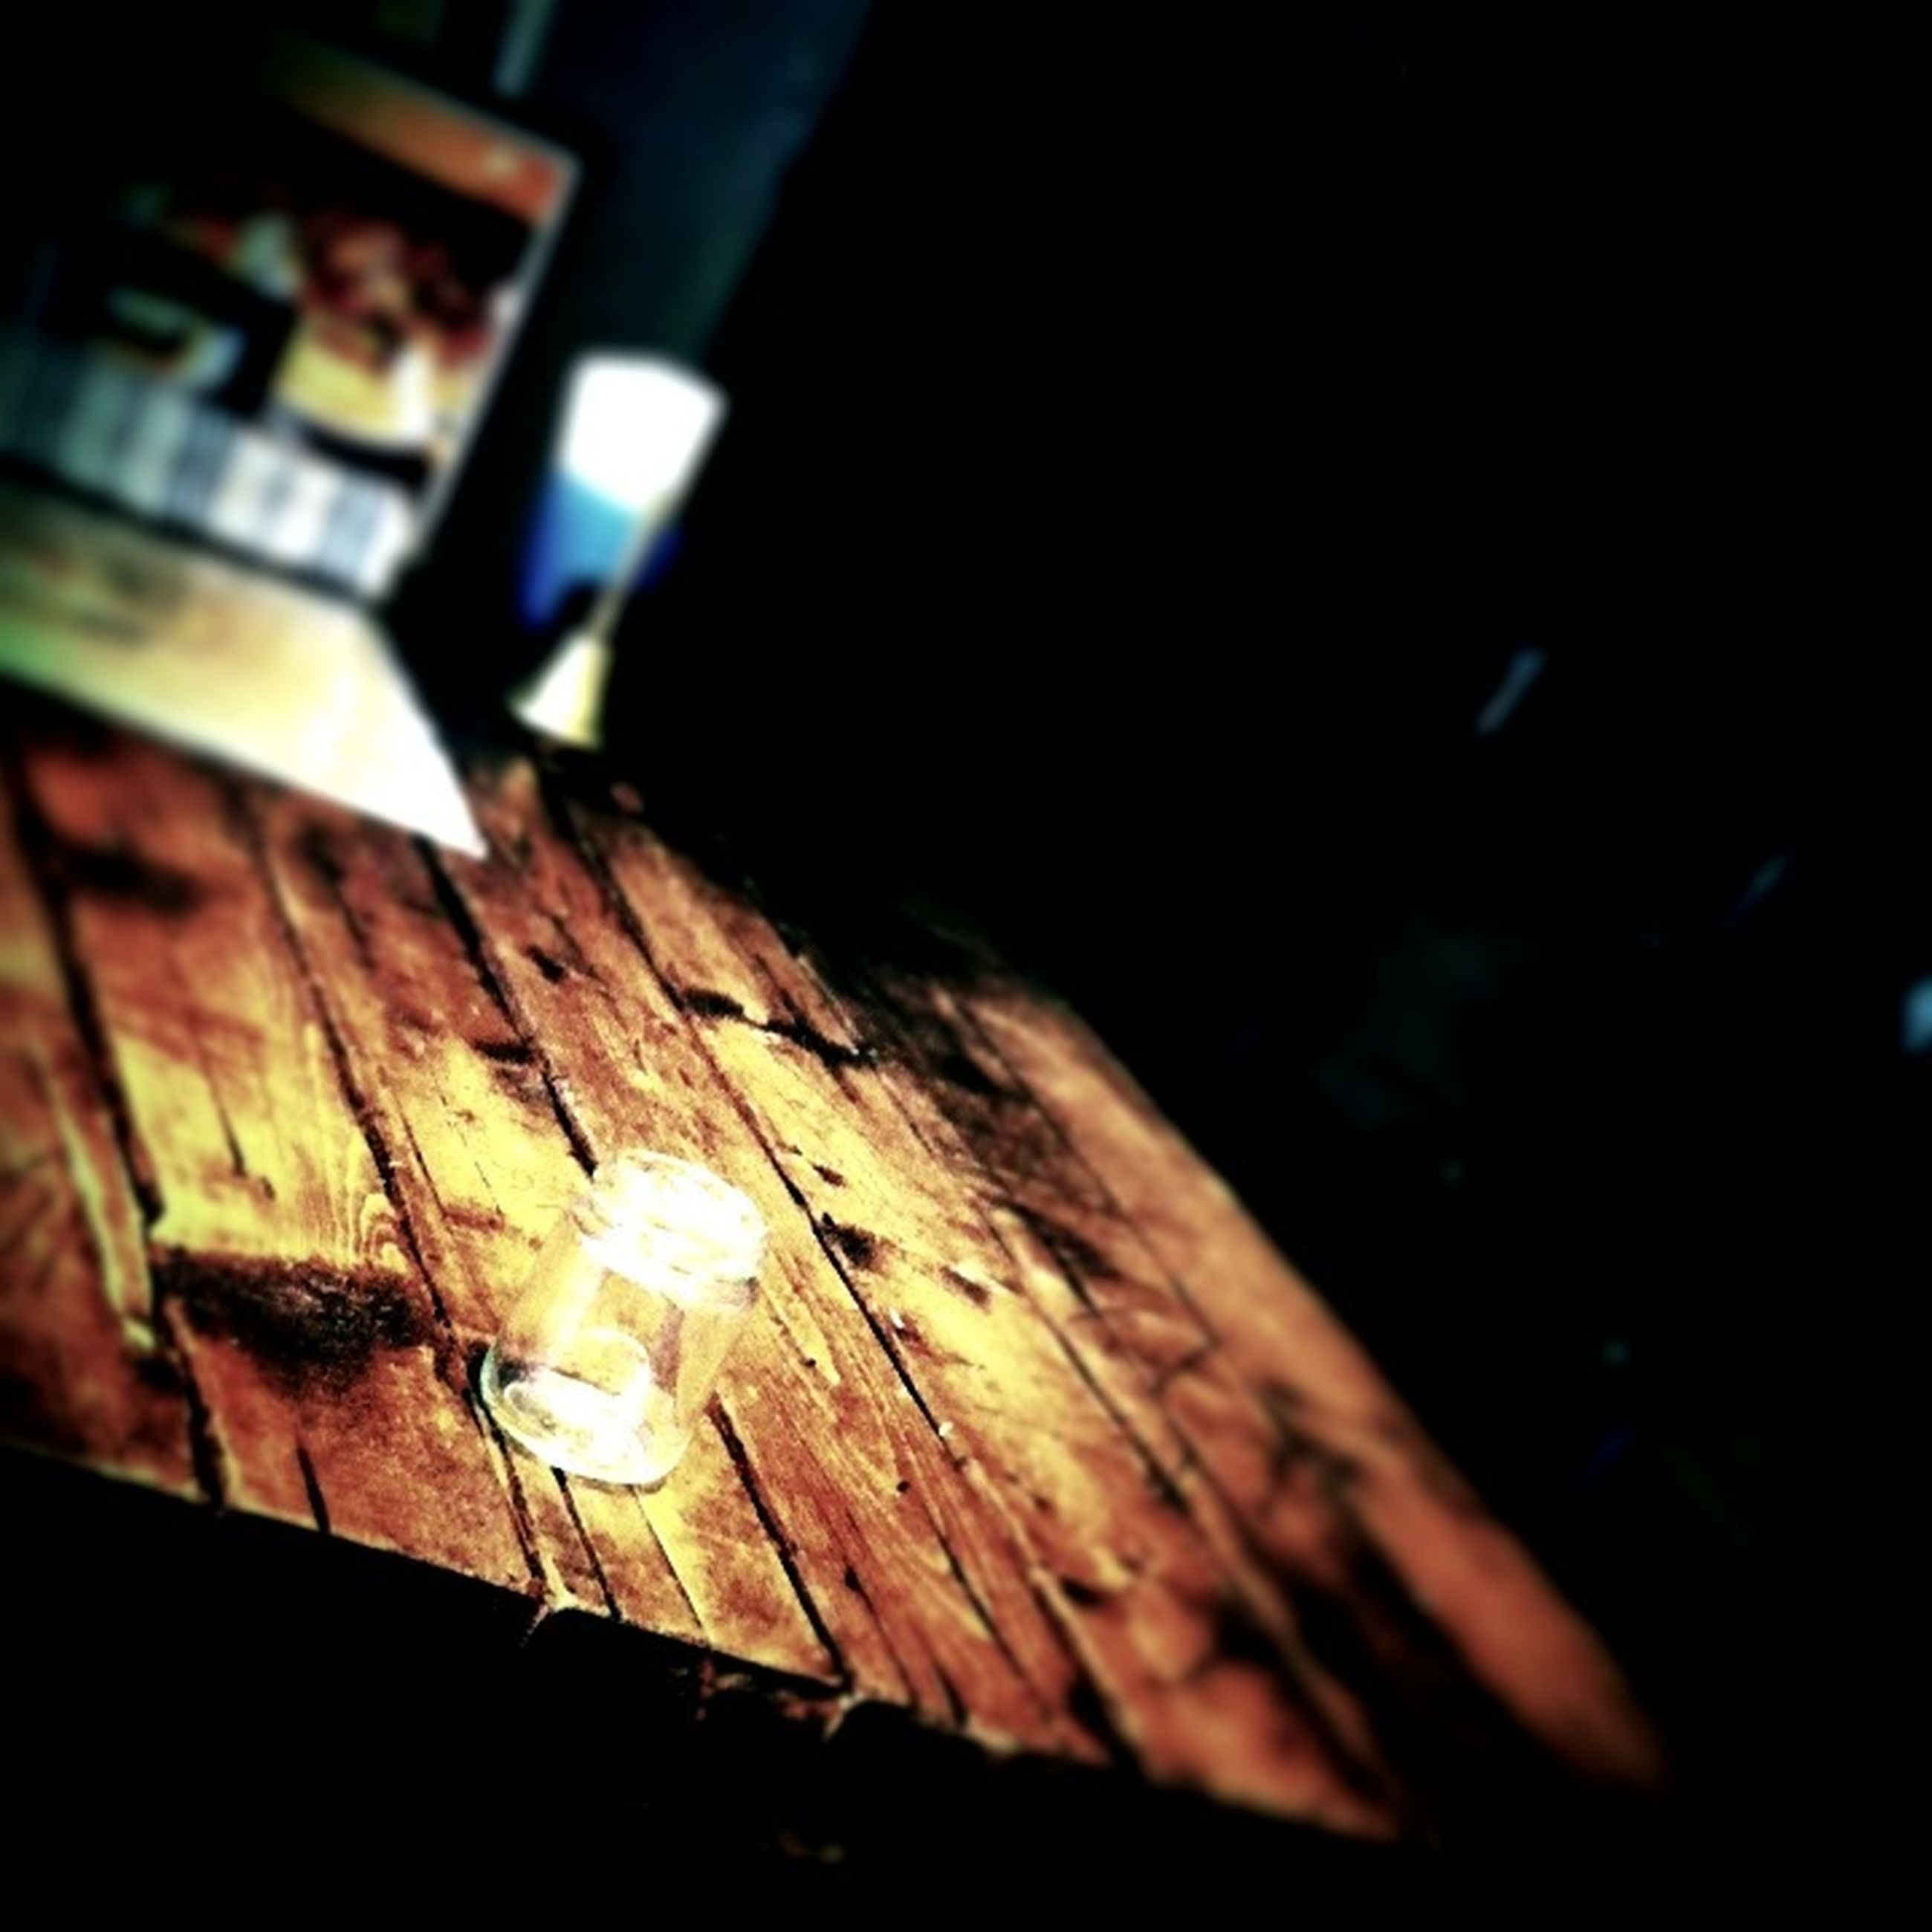 indoors, night, wood - material, selective focus, dark, close-up, wooden, focus on foreground, no people, high angle view, shadow, wood, auto post production filter, sunlight, home interior, house, built structure, illuminated, table